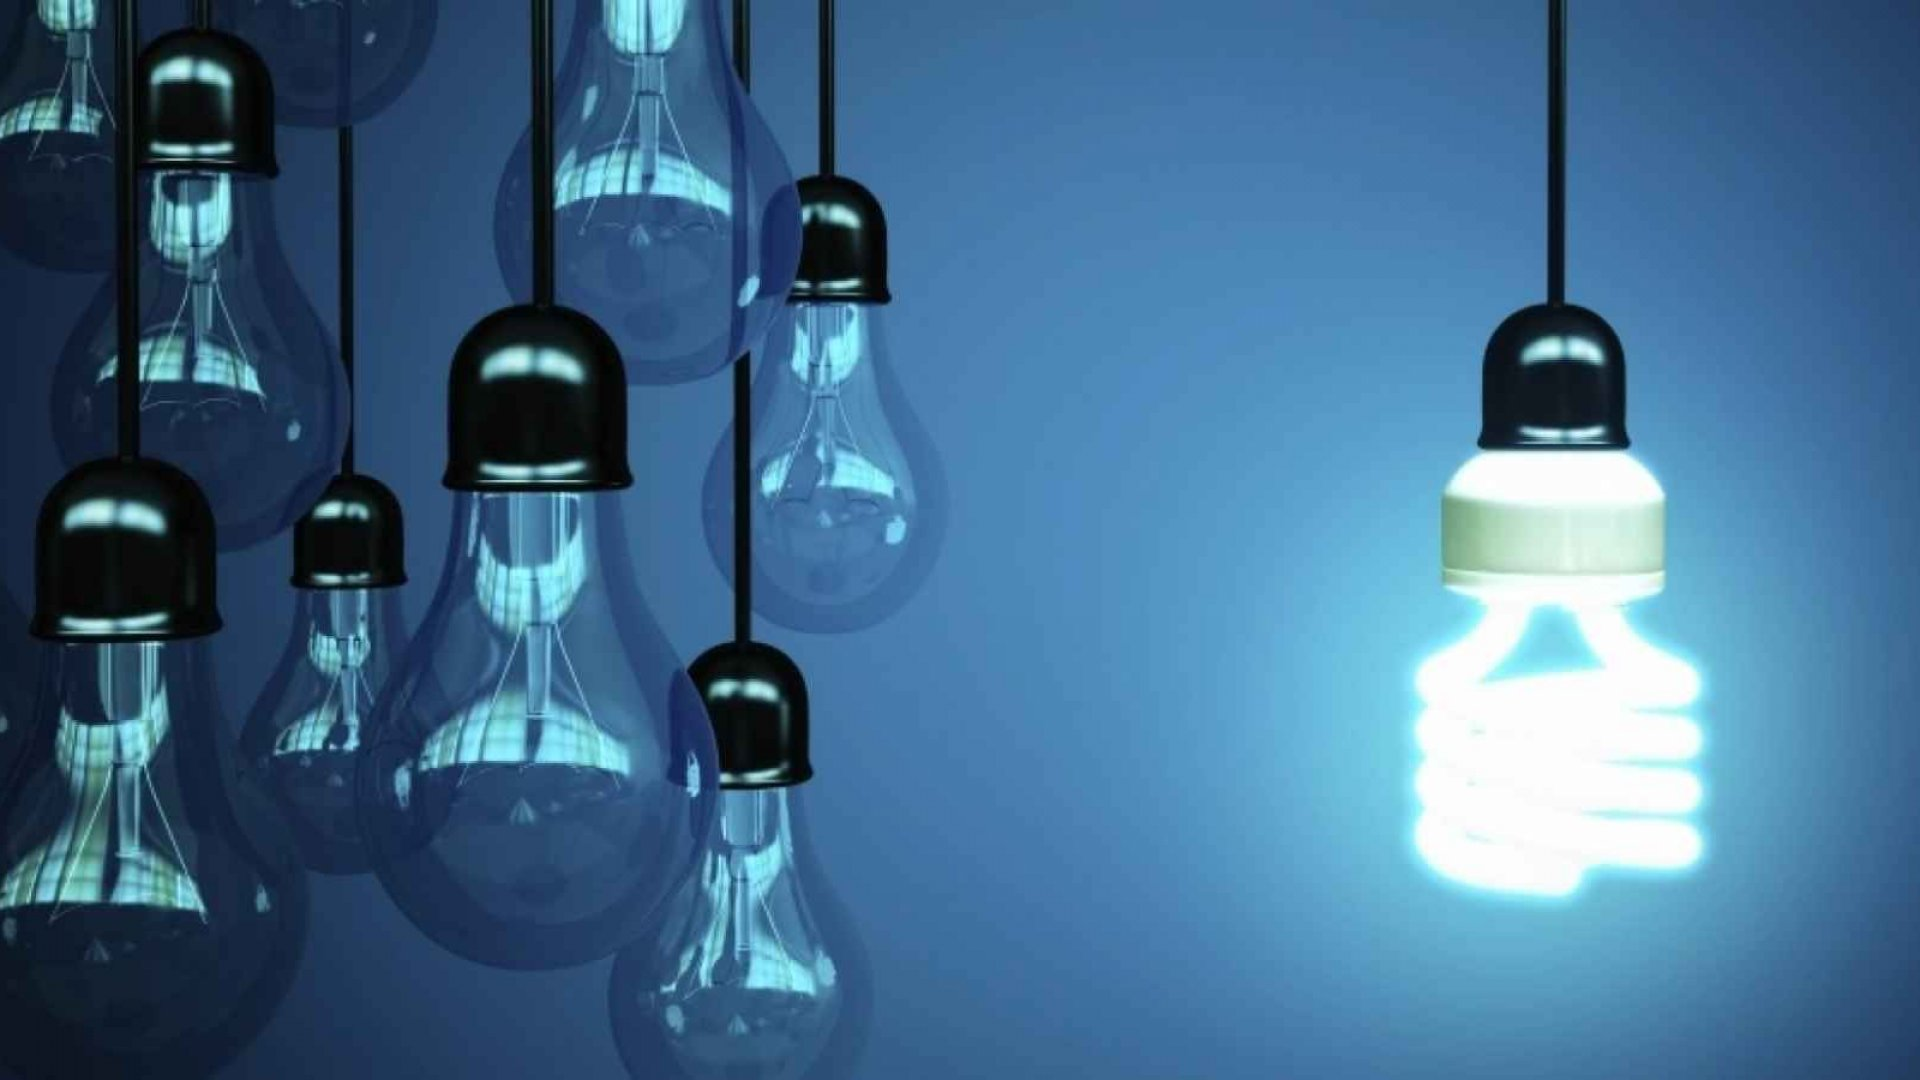 6 Strategies For Building A Culture of Innovation